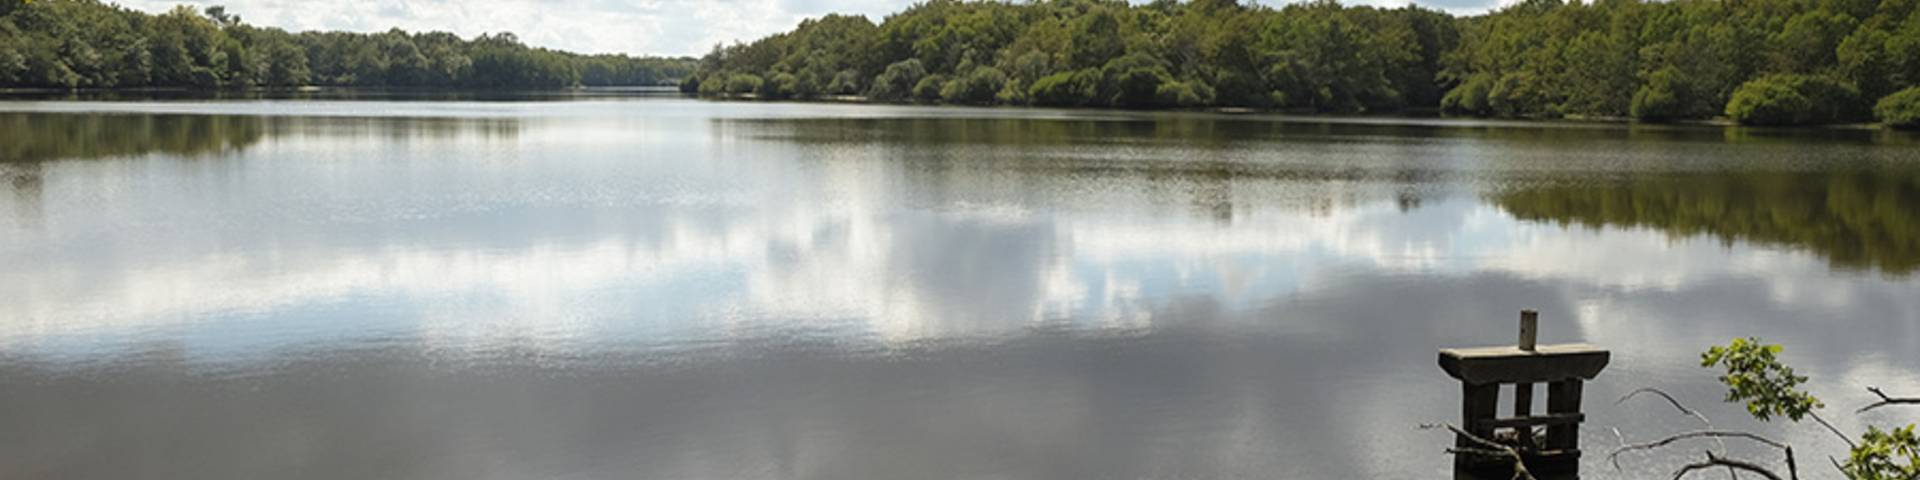 Lake in the Sologne